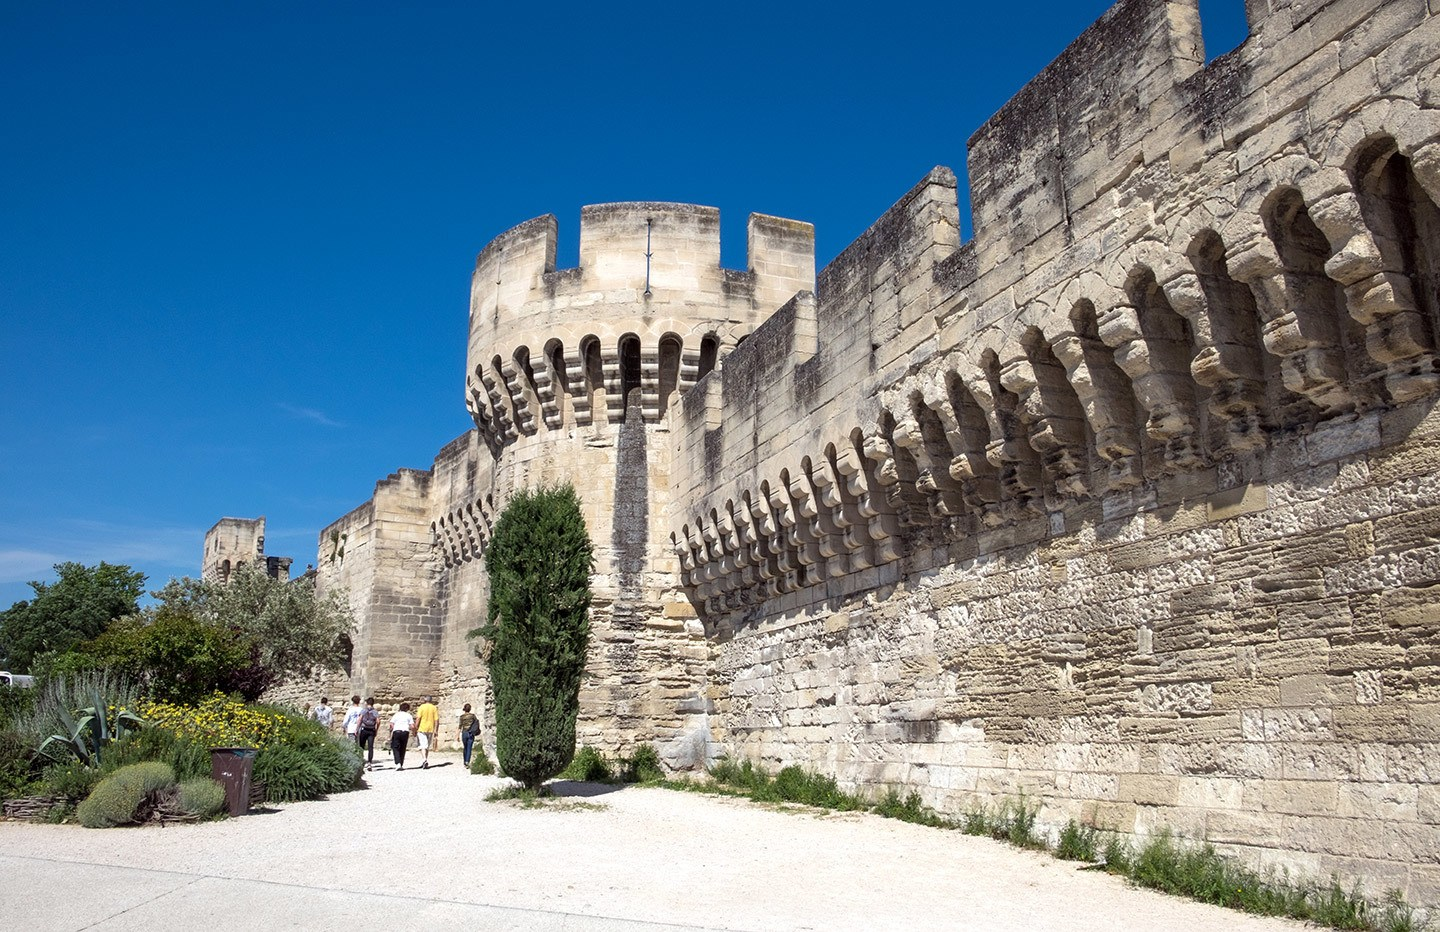 The city walls in Avignon, South of France